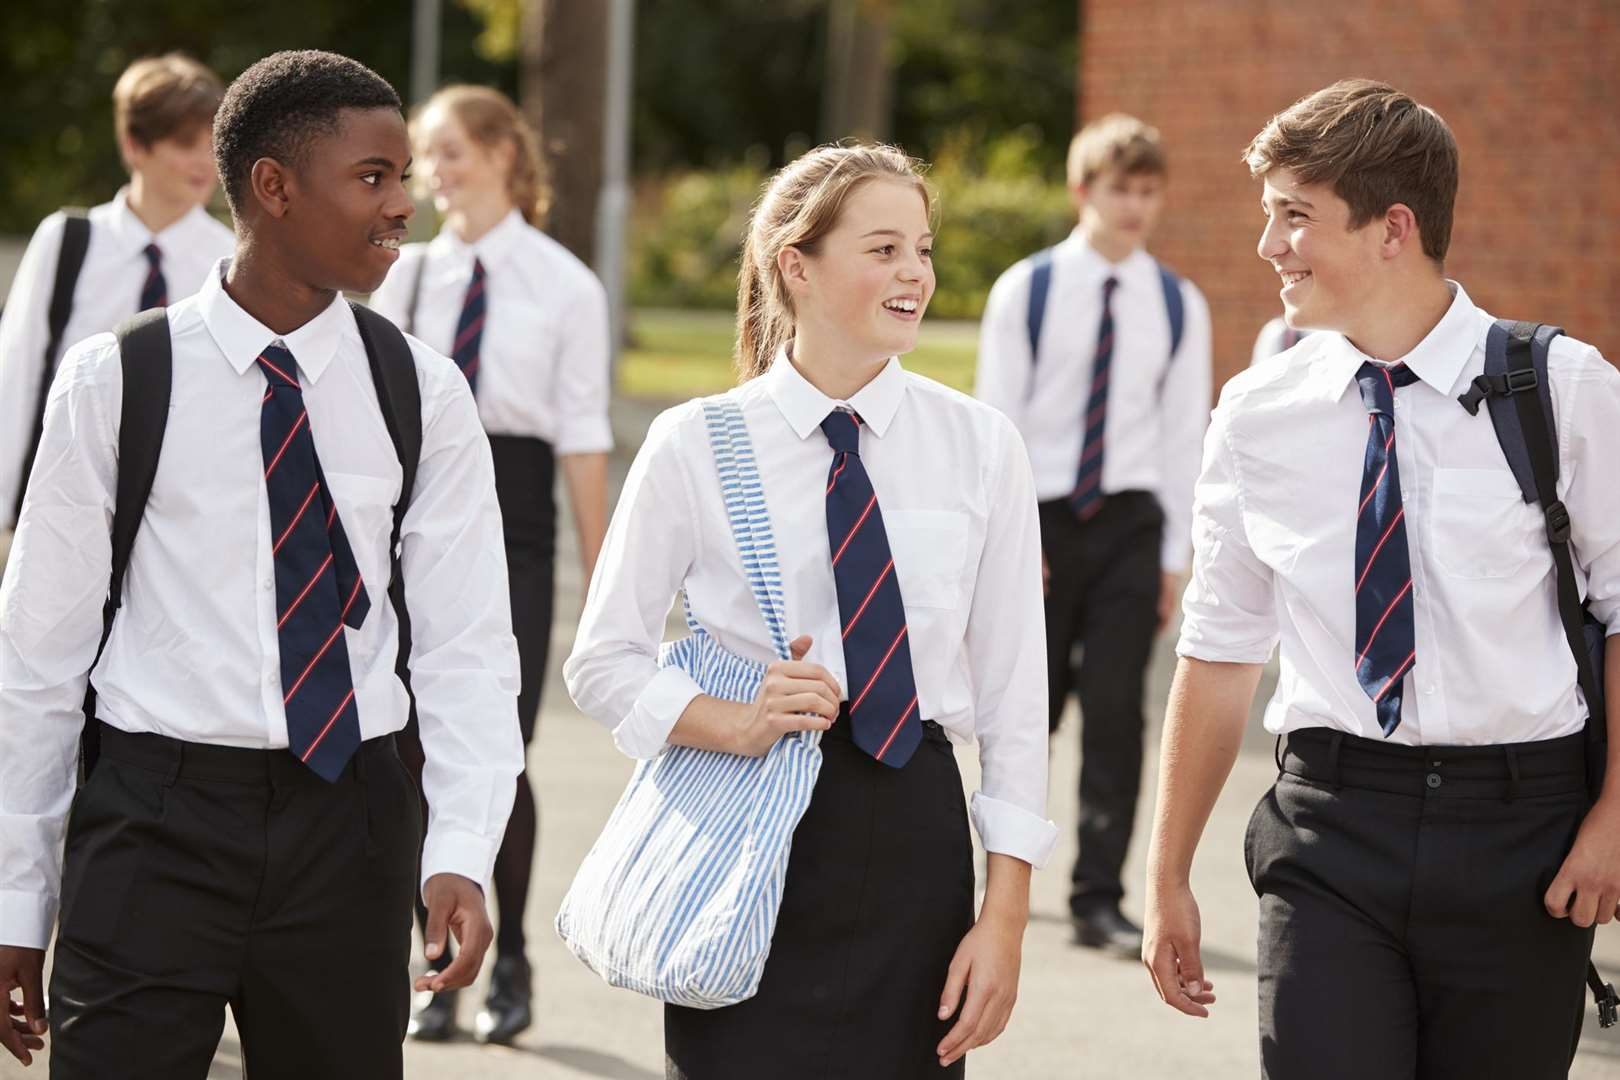 Secondary schools are soon to begin showing prospective pupils what they can offer